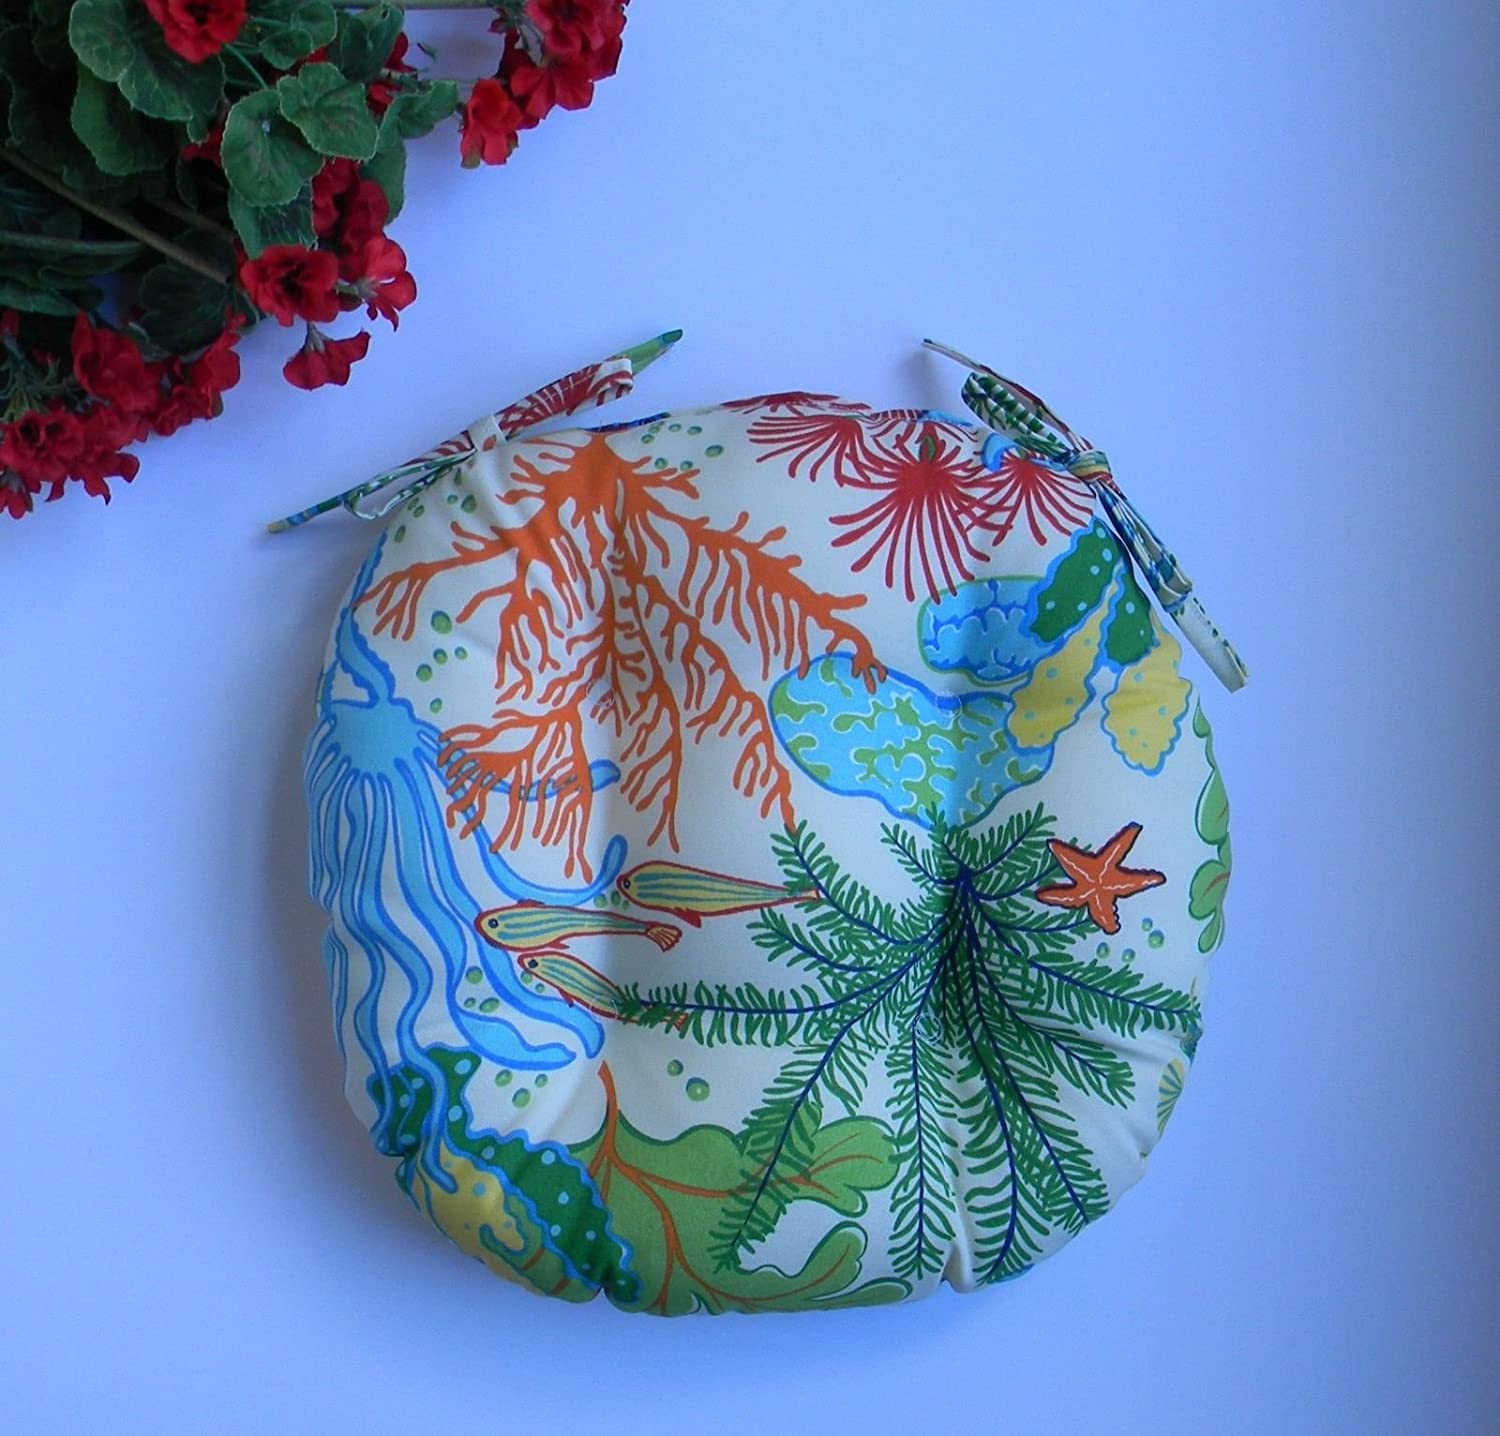 Resort Spa Home Decor Indoor Outdoor Round Tufted Bistro Cushion with Ties – Orange, Turquoise, Green, Yellow Splish Splash Whimsical Tropical Fish Fabric – Choose Size 18